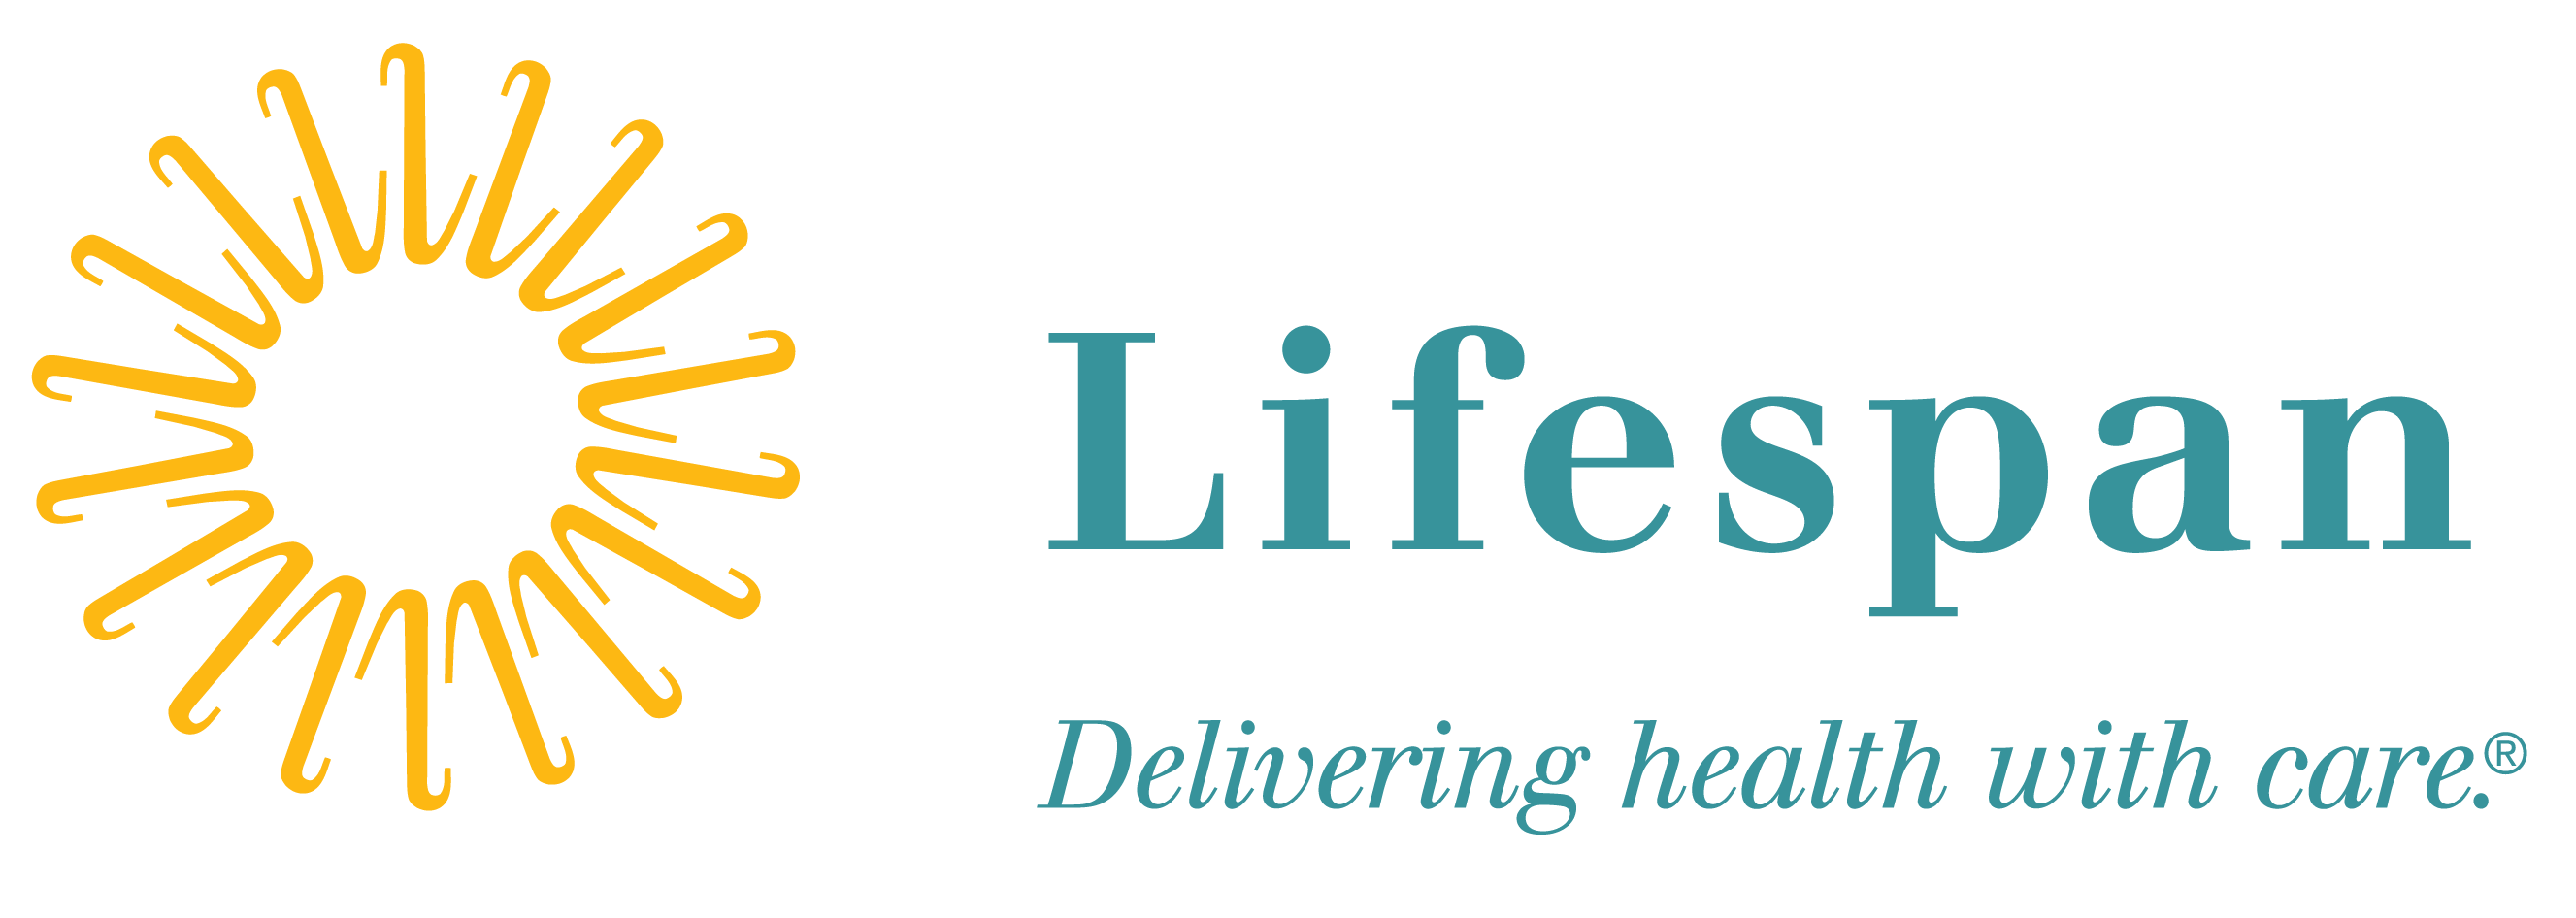 Lifespan - Delivering Health with Care